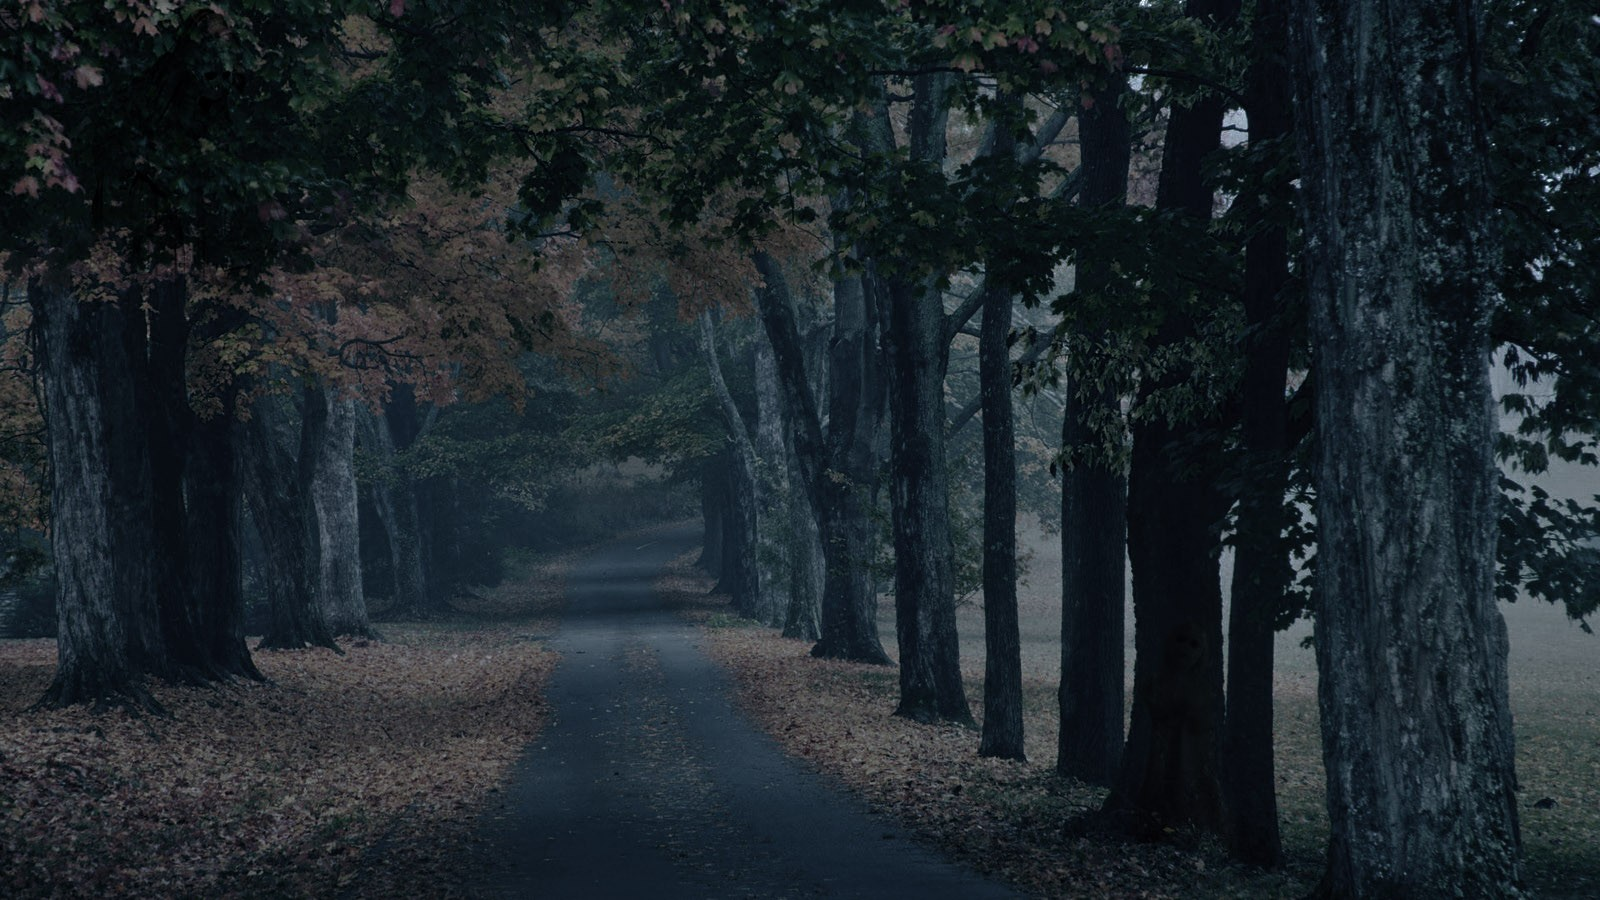 Wallpaper Images Of Fall Trees Lined Lake Path Wallpaper And Background Image 1600x900 Id 101819